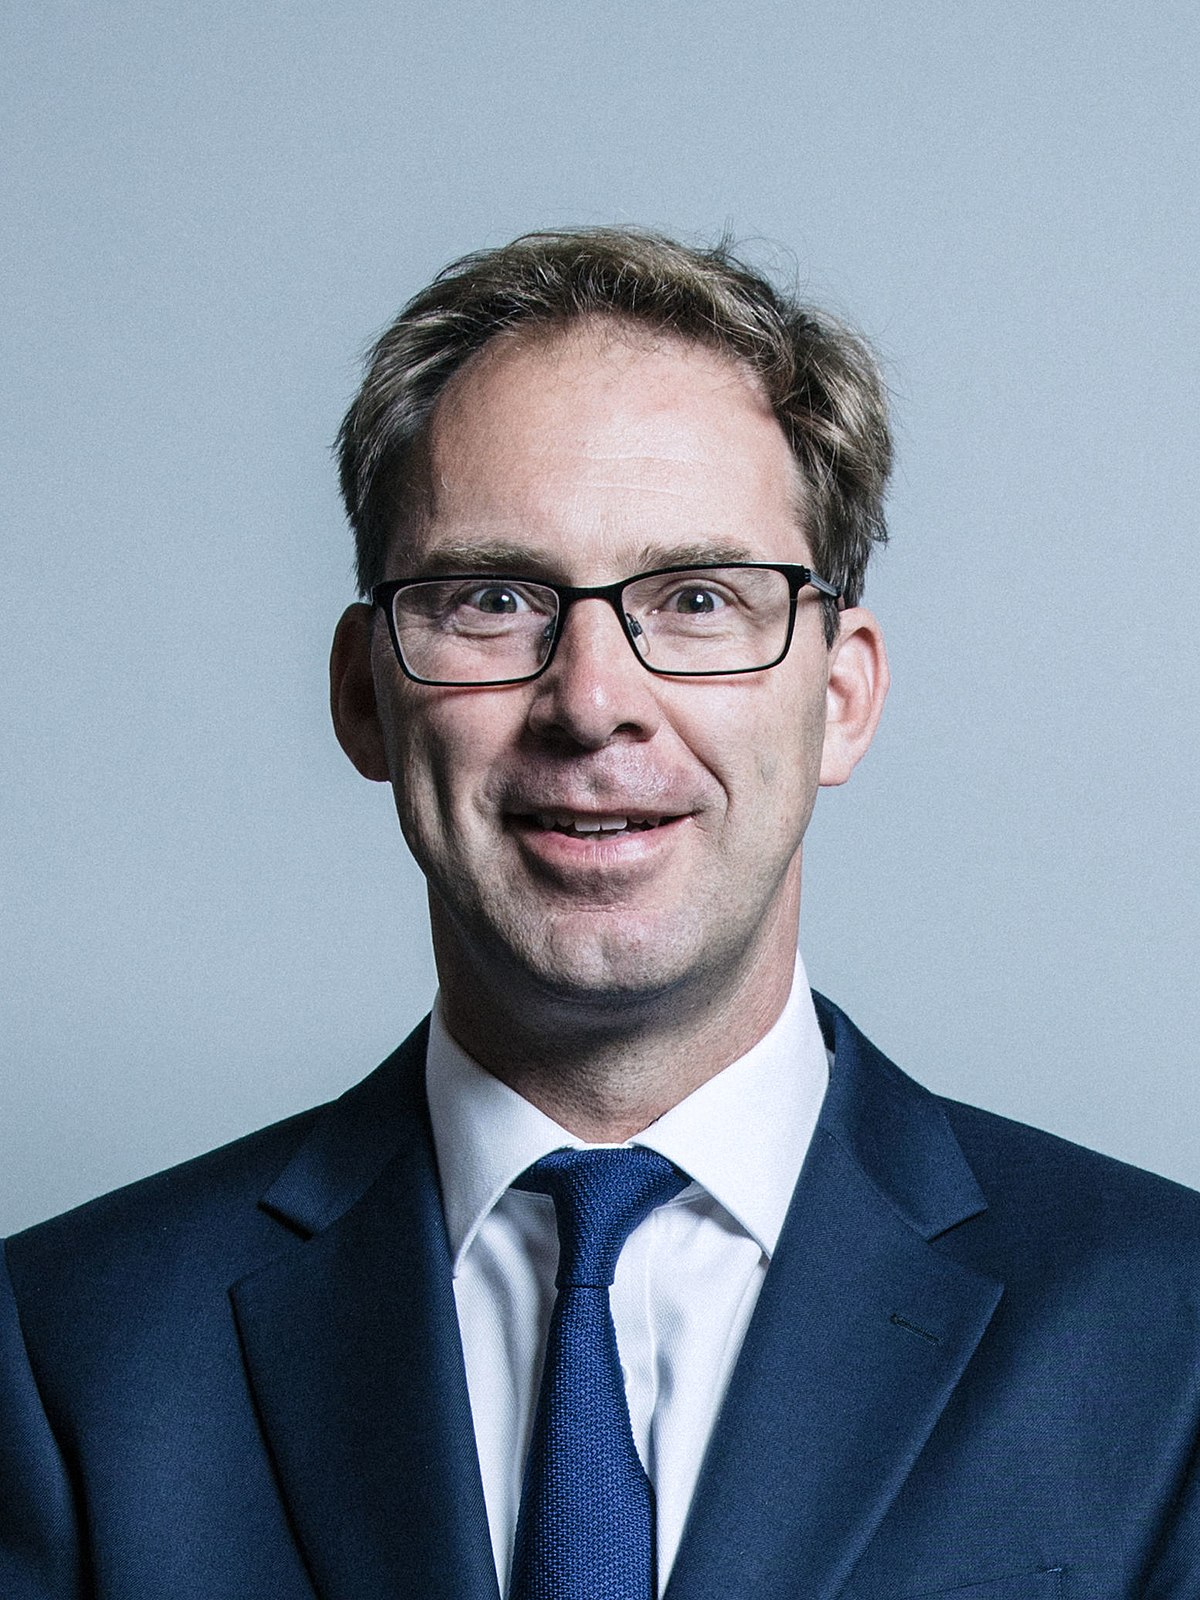 tobias ellwood wikipedia